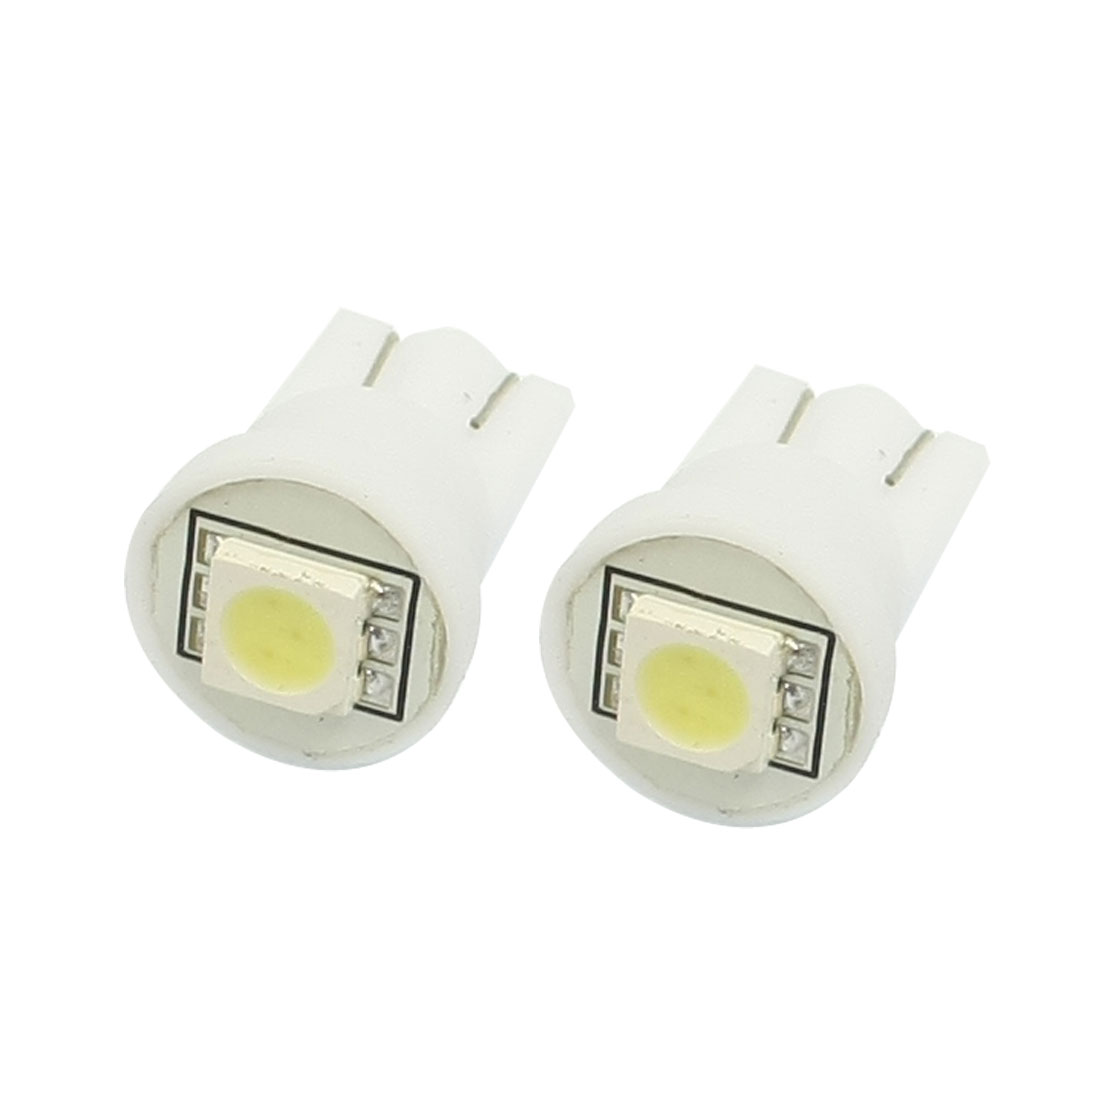 2 Pcs Car Auto Interior White T10 W5W 5050 SMD LED Light Bulb Lamp